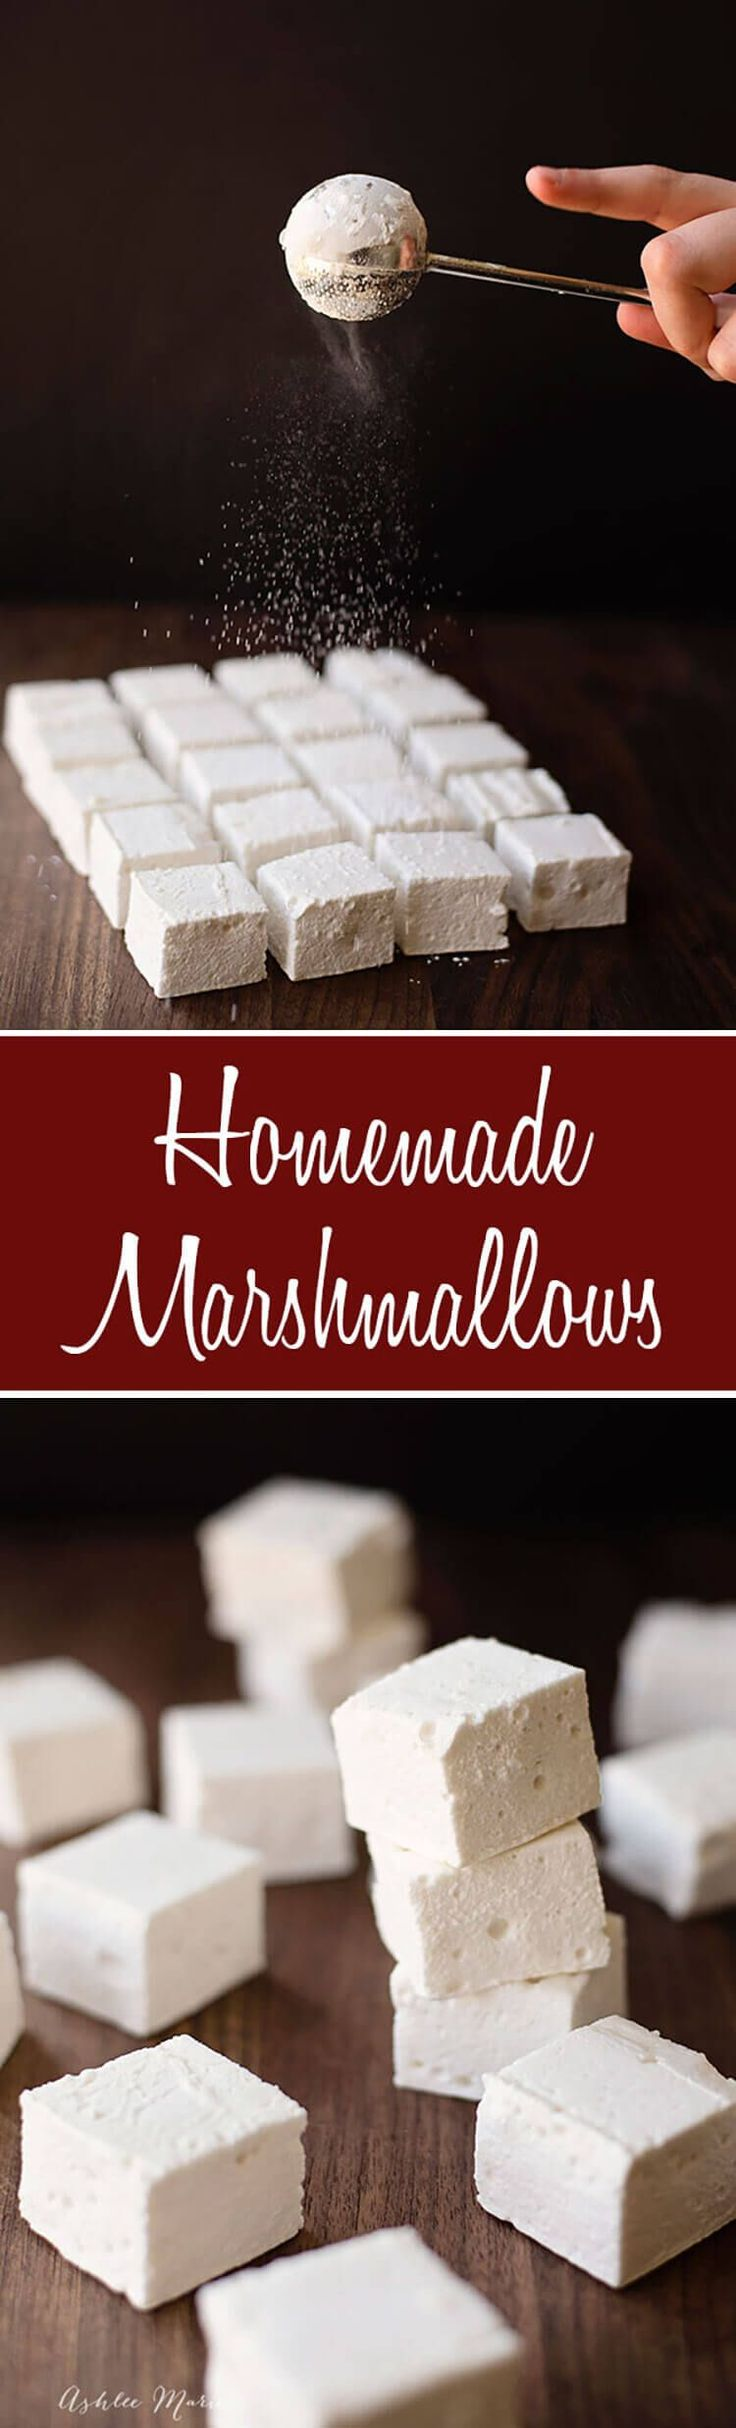 Homemade Marshmallows are easy to make and they taste amazing, plus a video kitchen tip on how to easily cut them into even squares. | Fall | Winter | Holiday | Marshmallows | Dessert | #holidaytreats #hotcocoa #hotchocolate #dessert #perfectmarshmallows #marshmallows